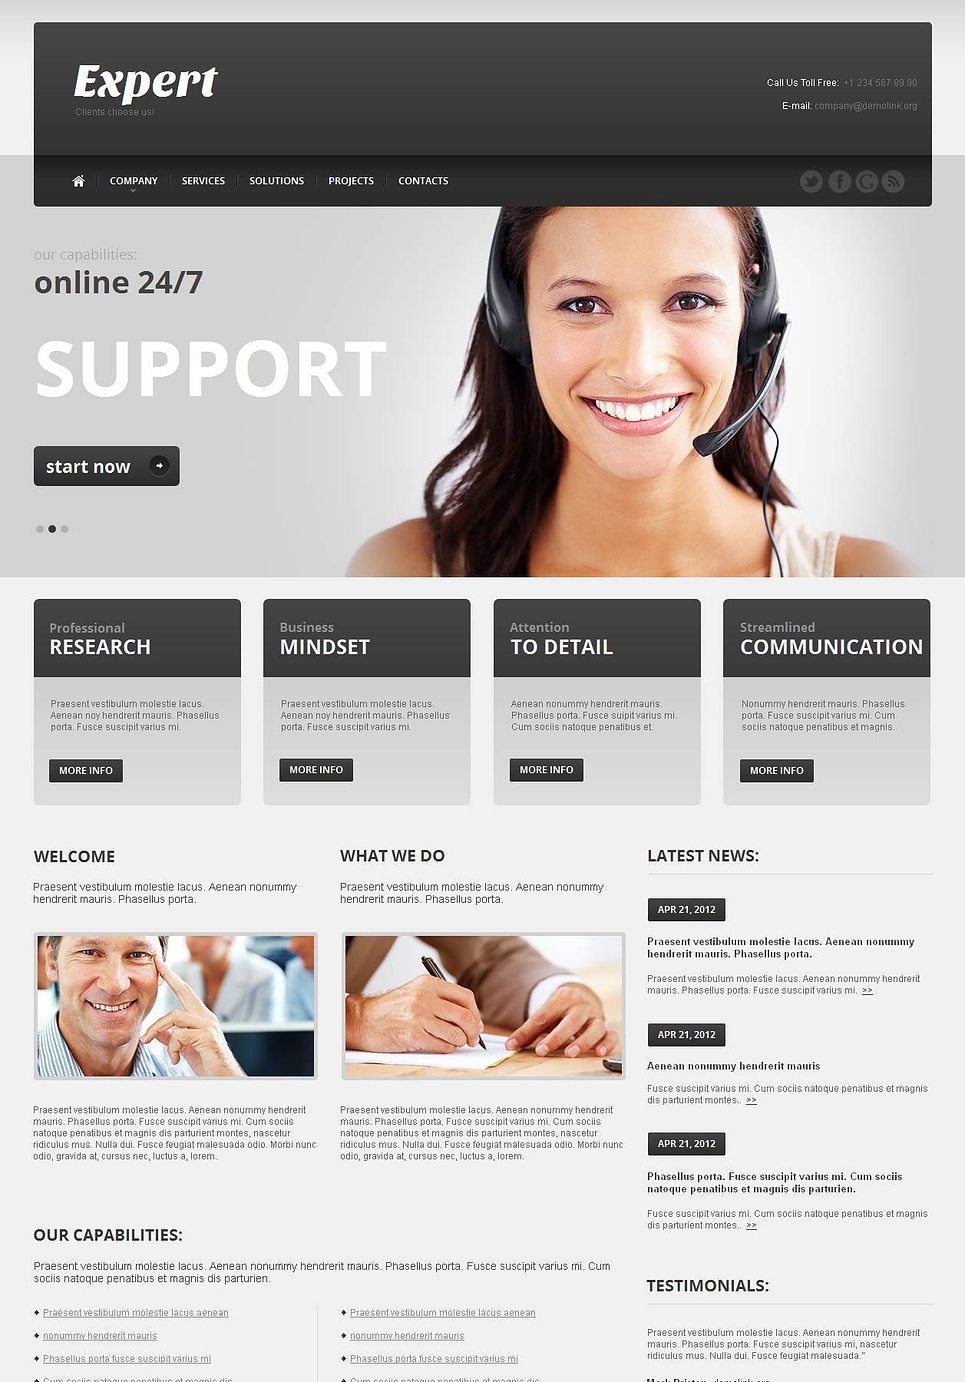 Call Center Website Template Done in Shades of Gray - image